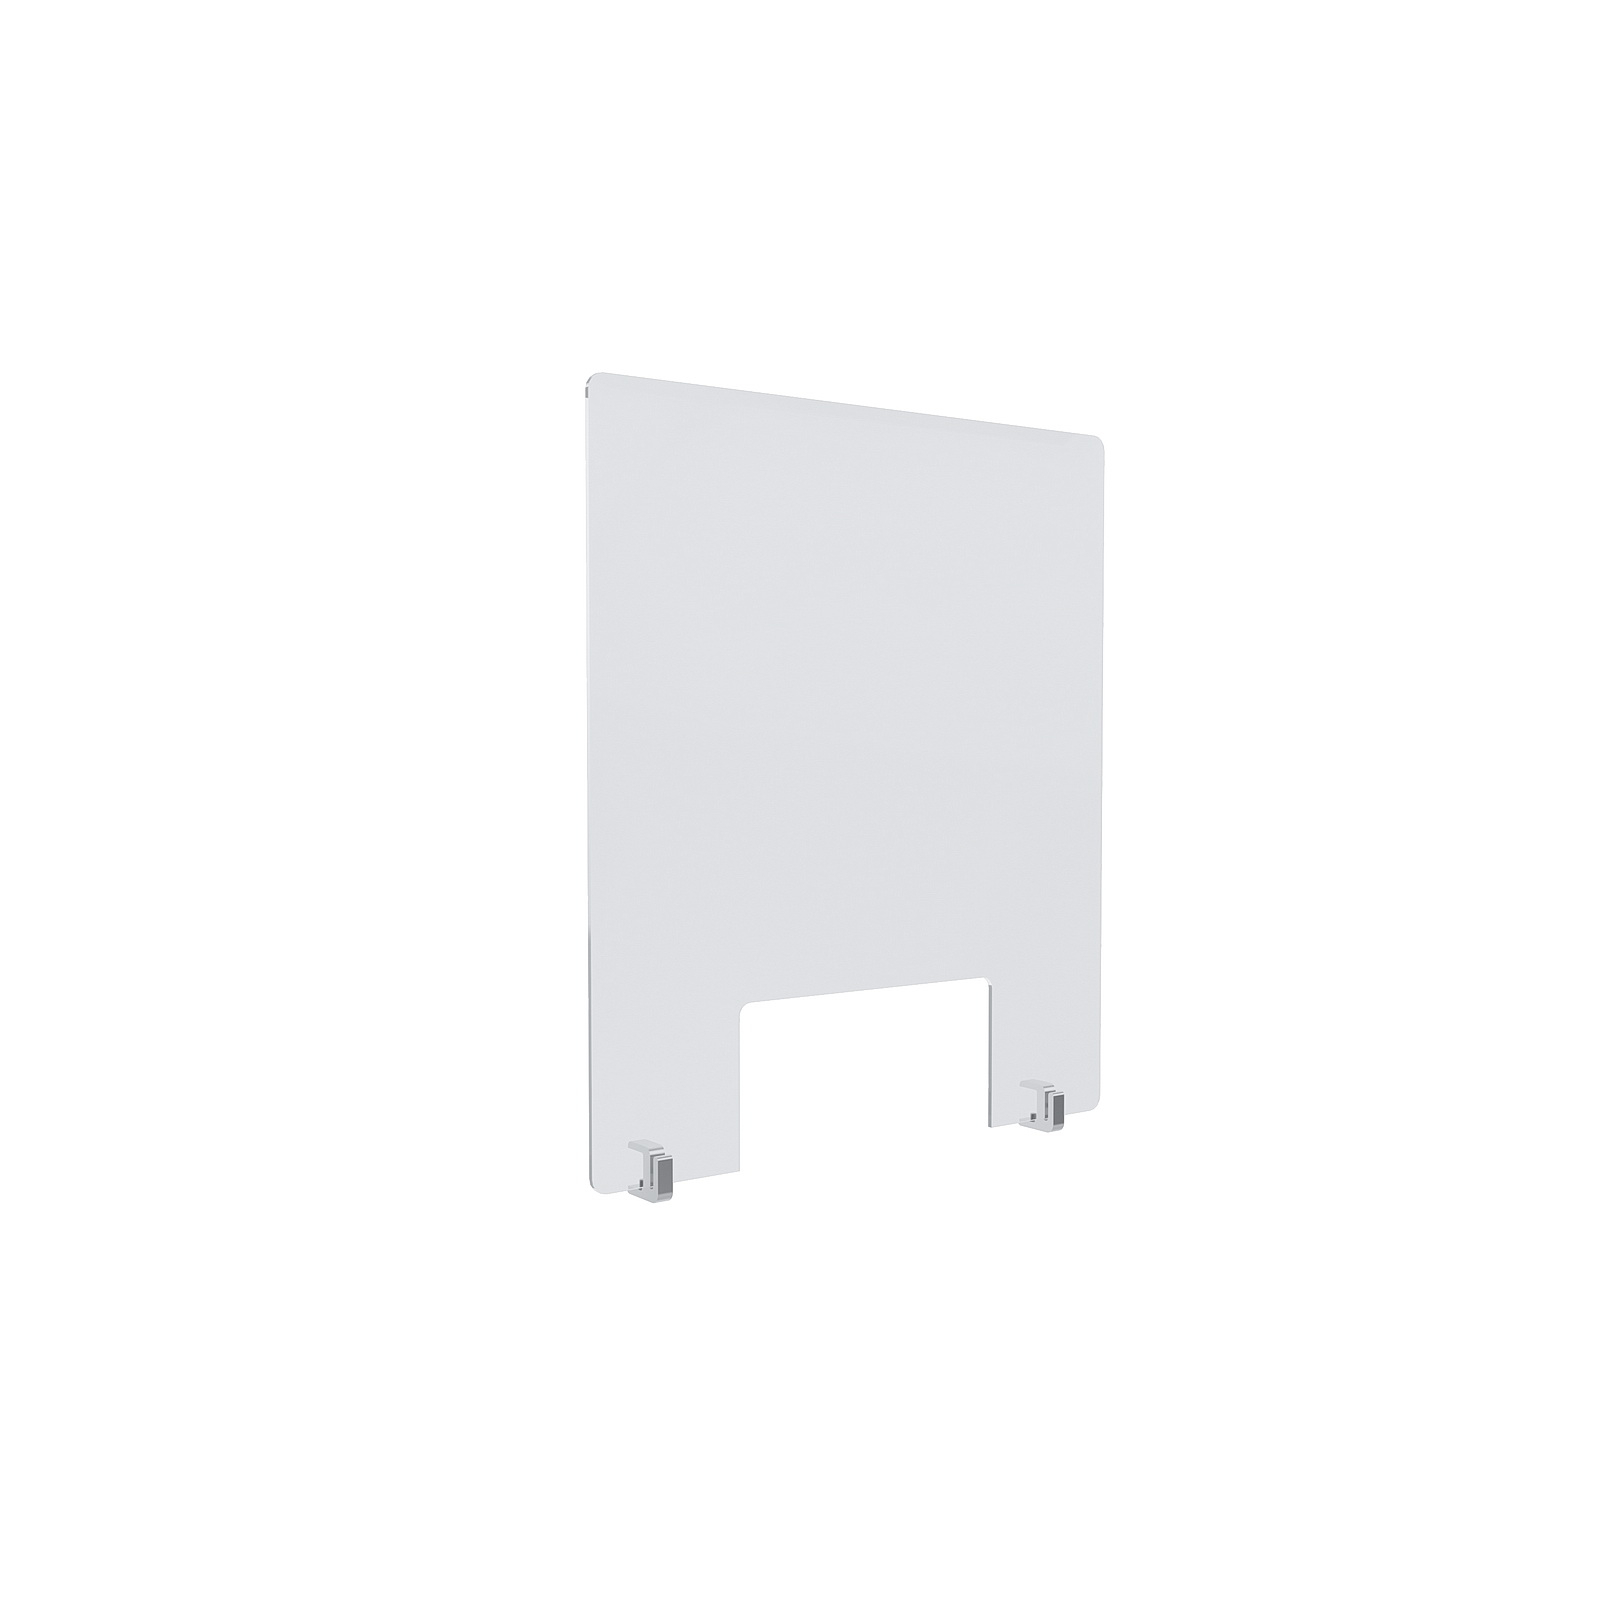 Clear Acrylic Sneeze Guard 20'' Wide x 23-1/2'' Tall (10'' x 5'' Cut Out), with (2) Clear Anodized Aluminum Front Gripping Counter Clamps (Clamp Material Accepted  1'' to 1-1/8'')